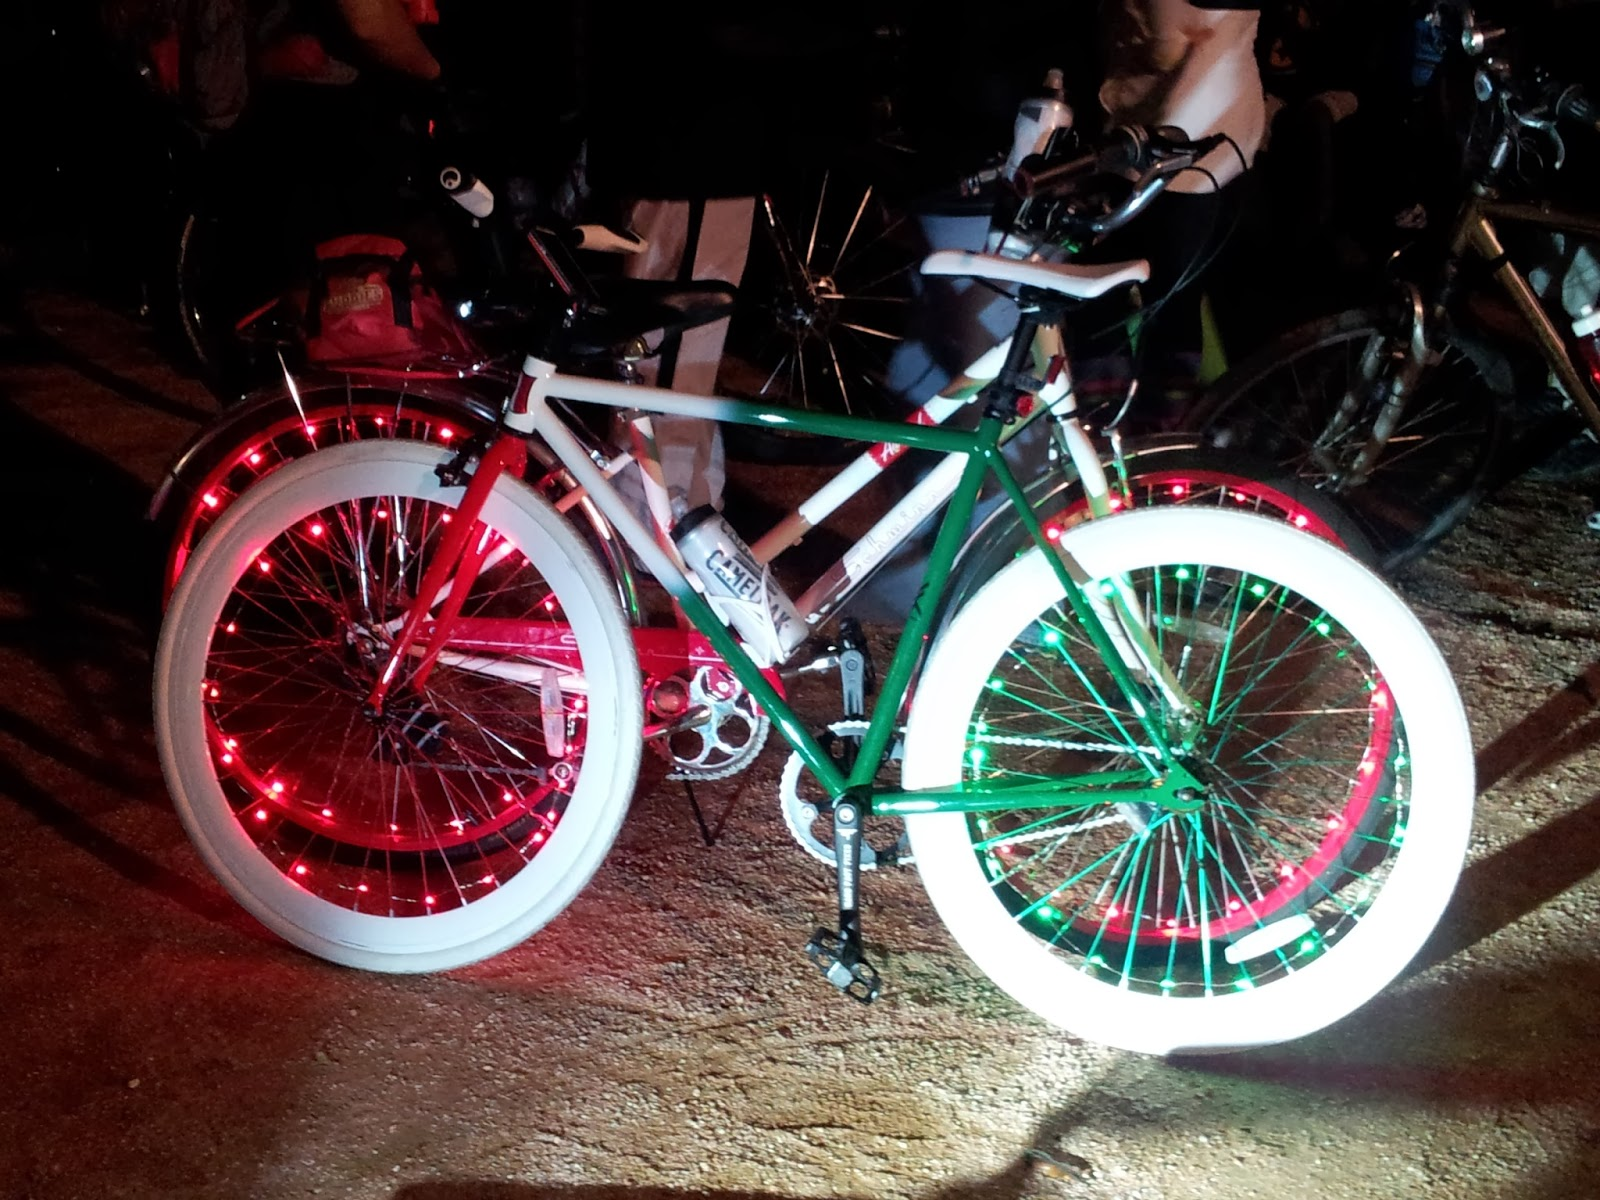 Critical Mass Bike Ride In Houston, customized bikes